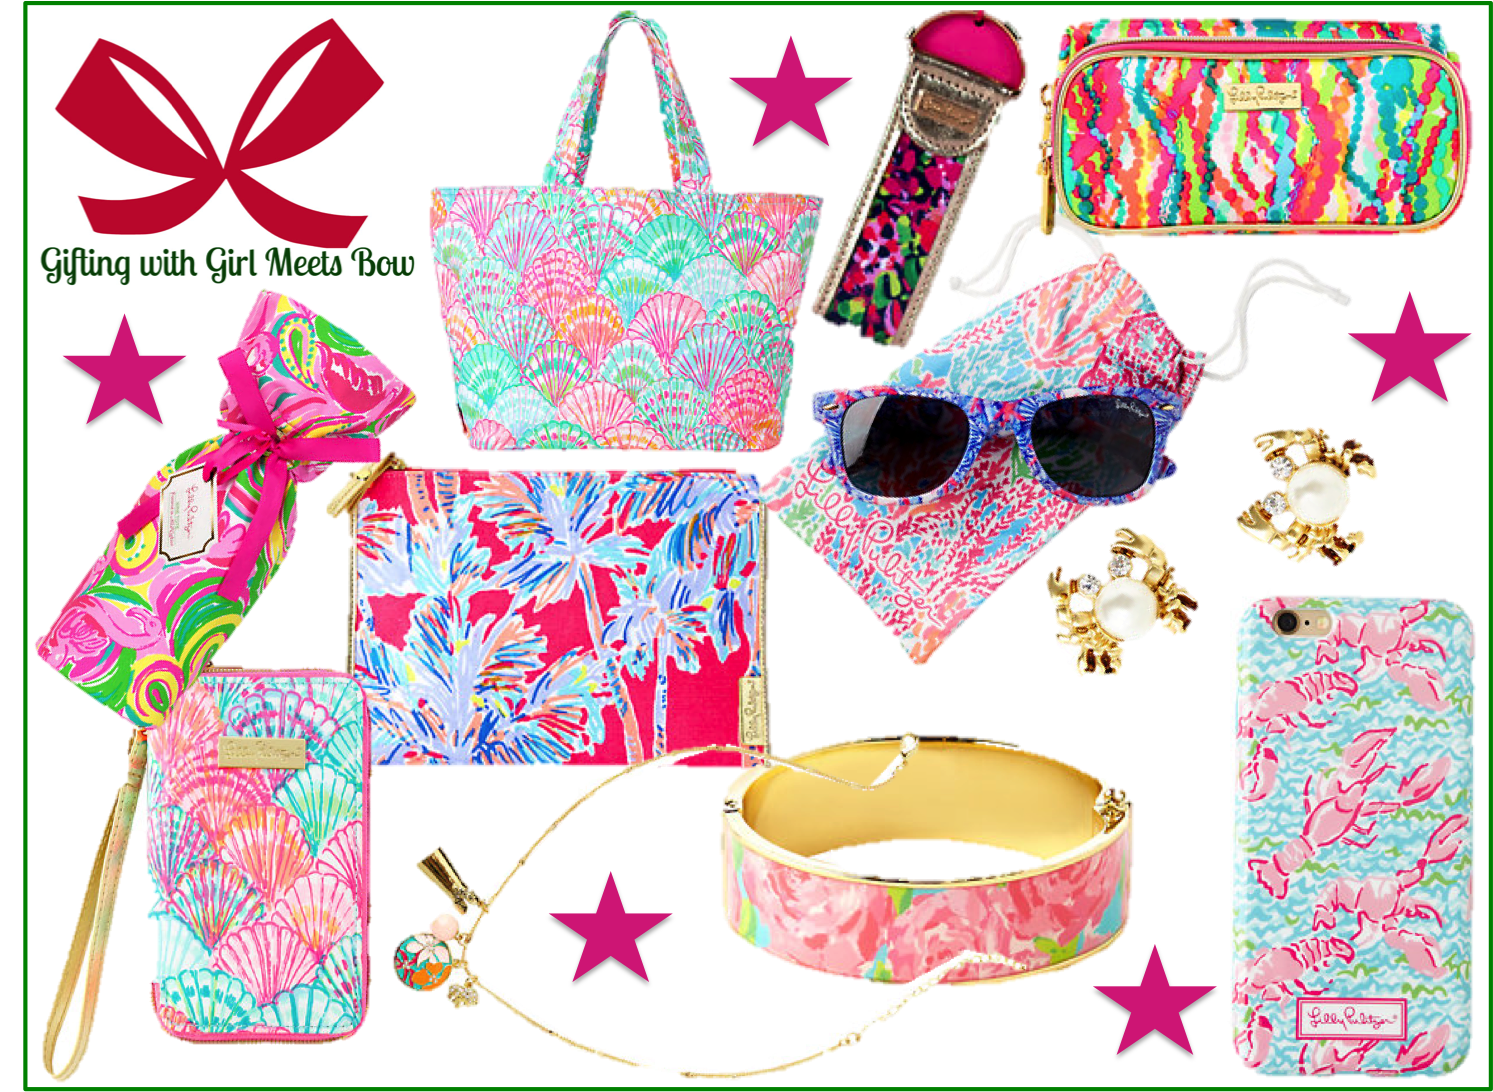 Gifting with Girl Meets Bow: For the Lilly Lover (Under $75!)